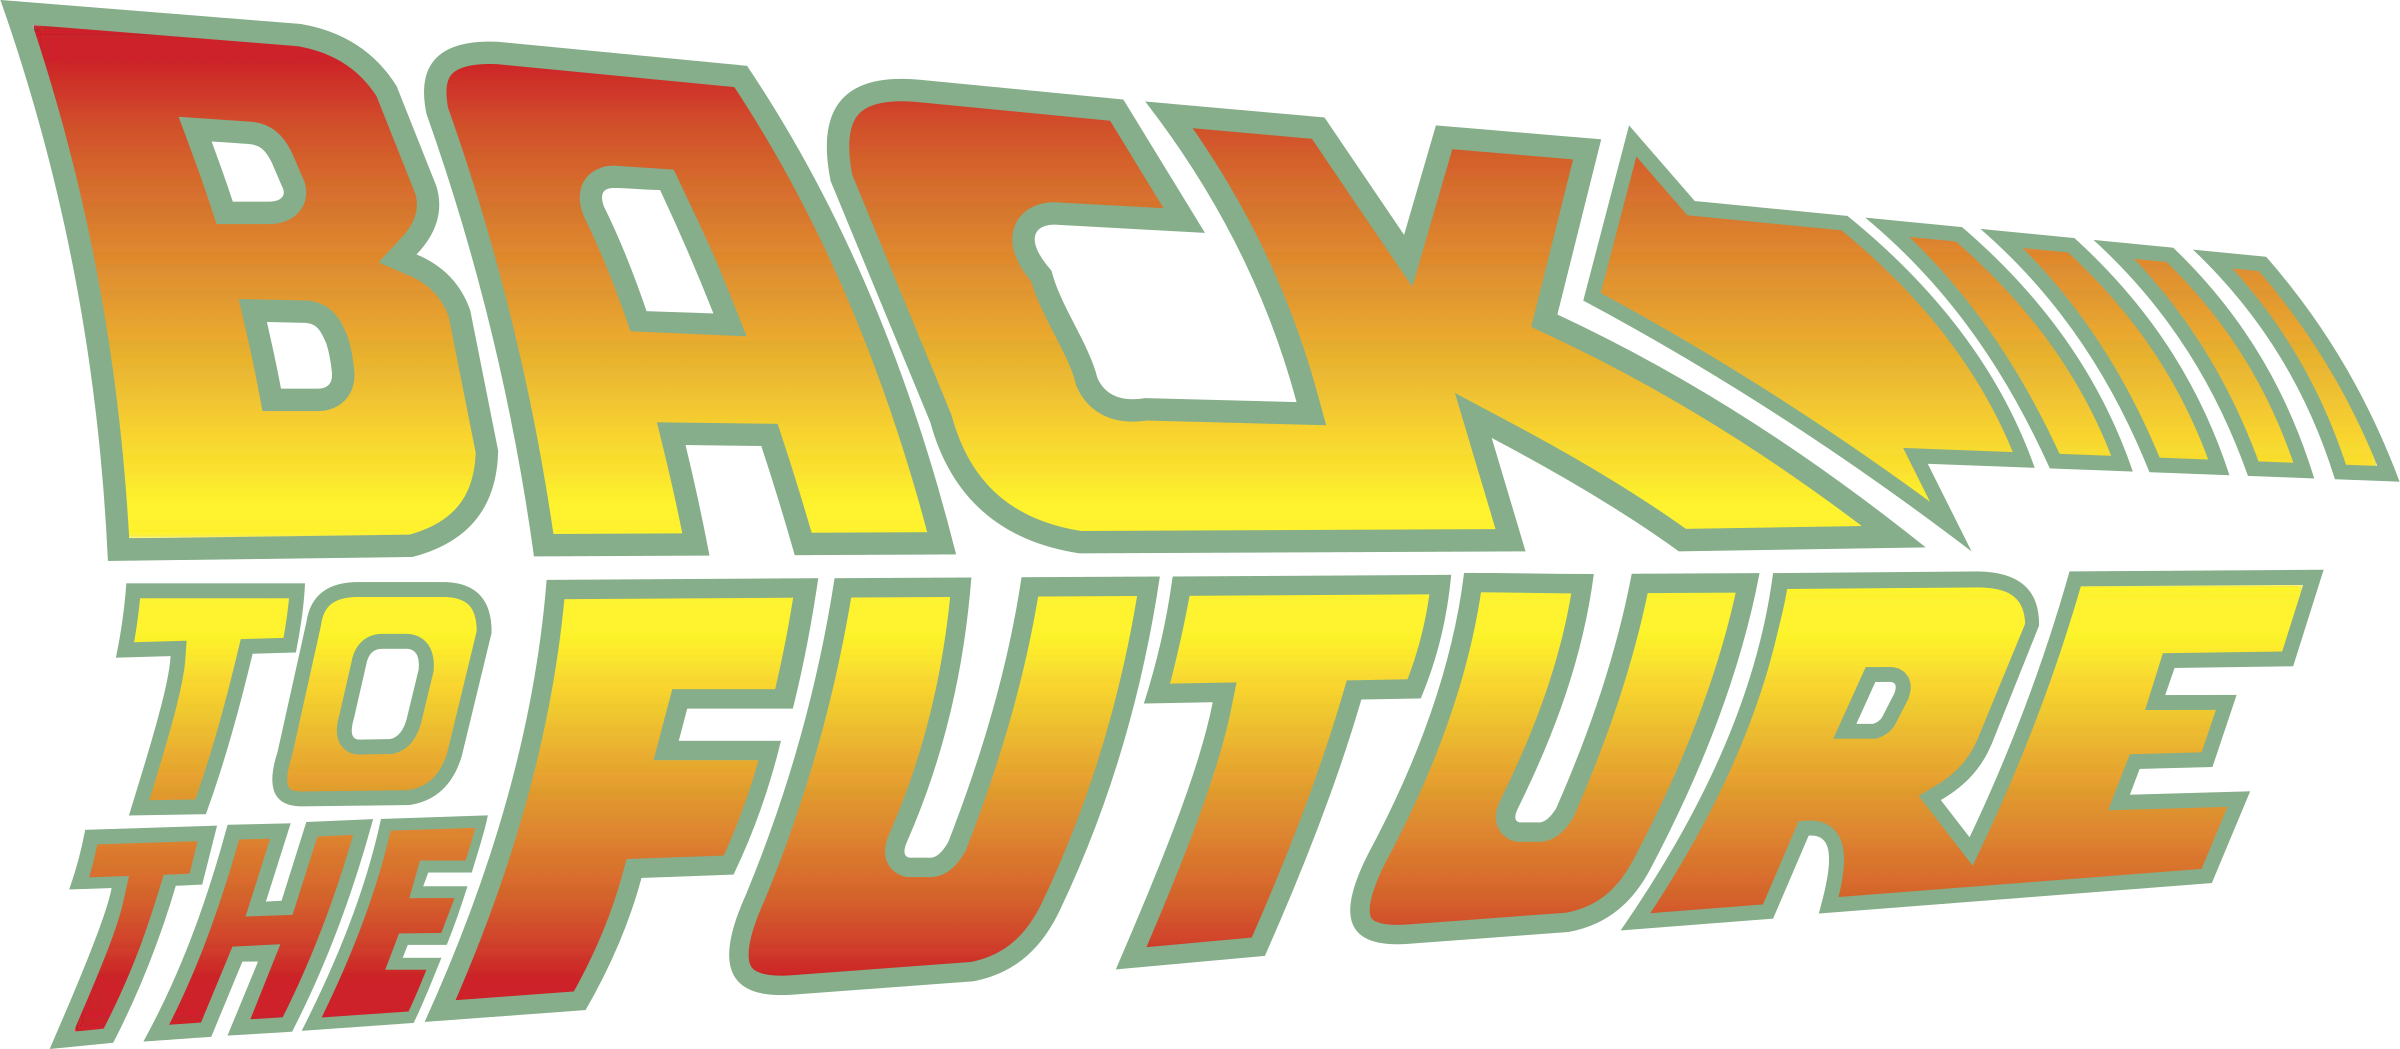 Future vector background. Back to the logo